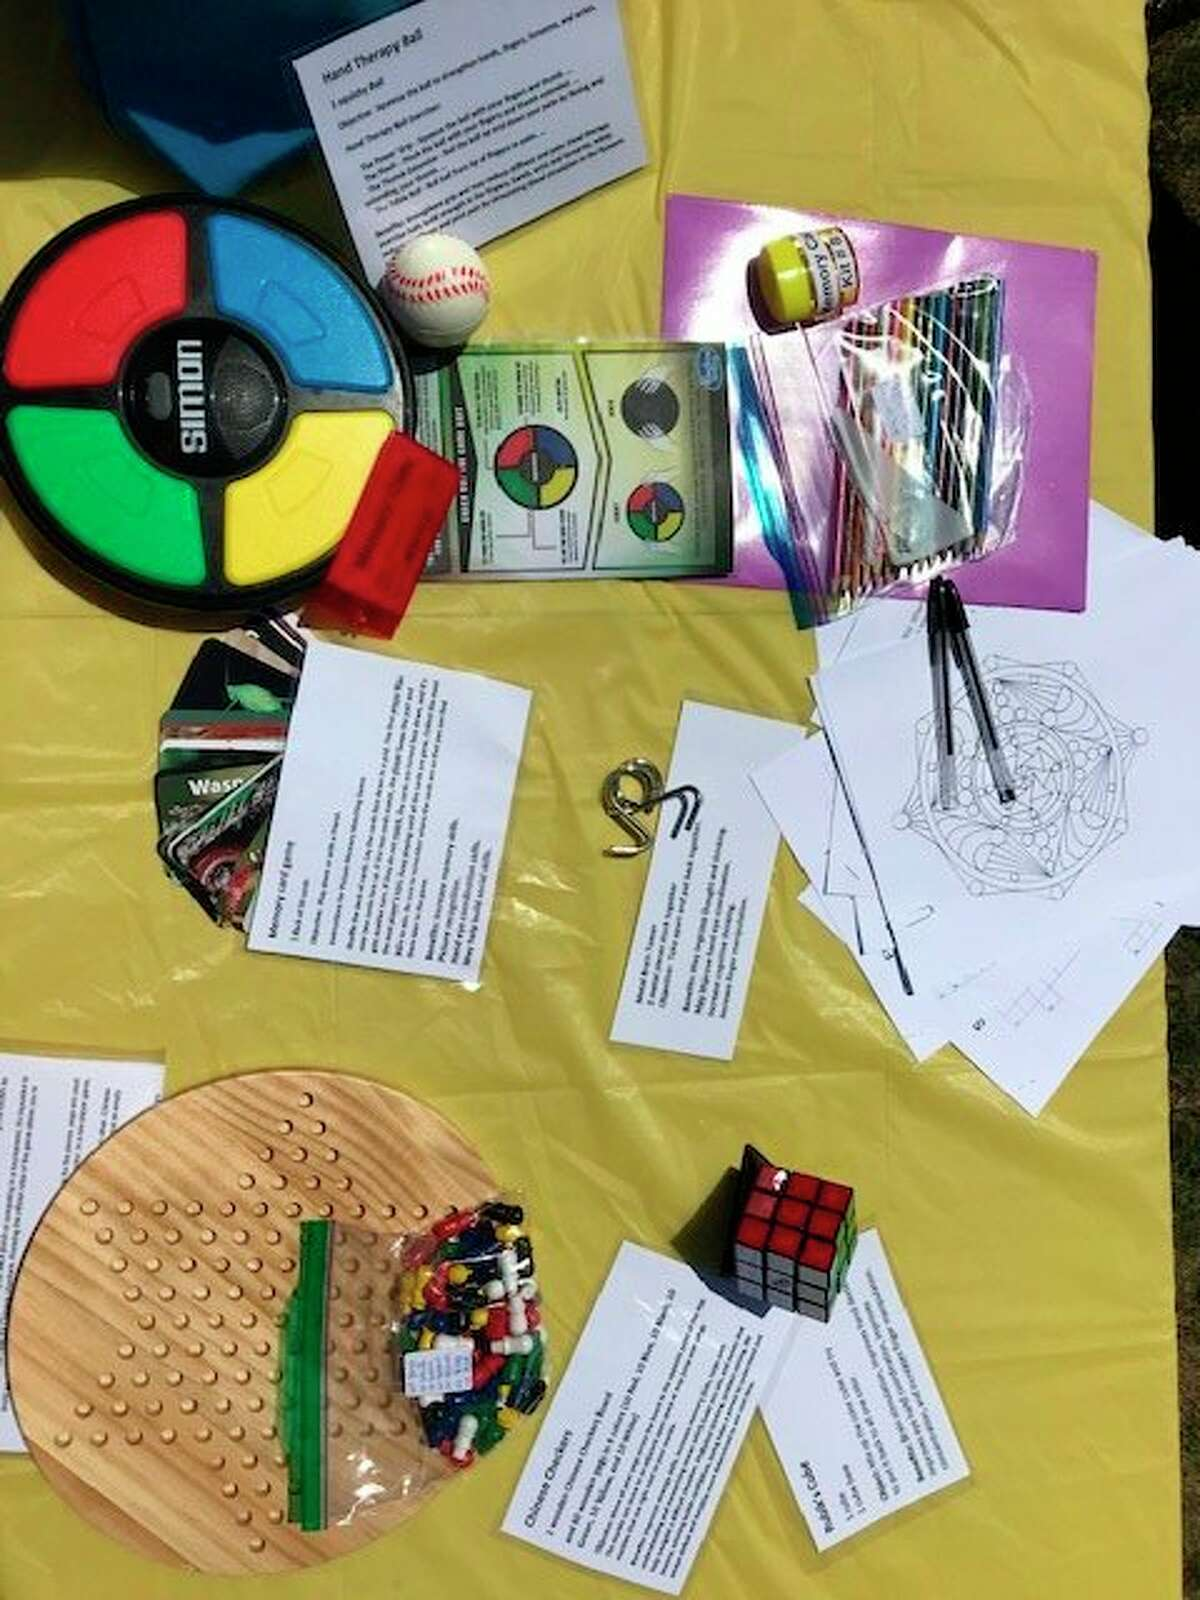 Memory care kitsavailable at the Manistee CountyLibrary include games and puzzles that may improve memory and cognition.(Courtesy Photo/Carol Shively)